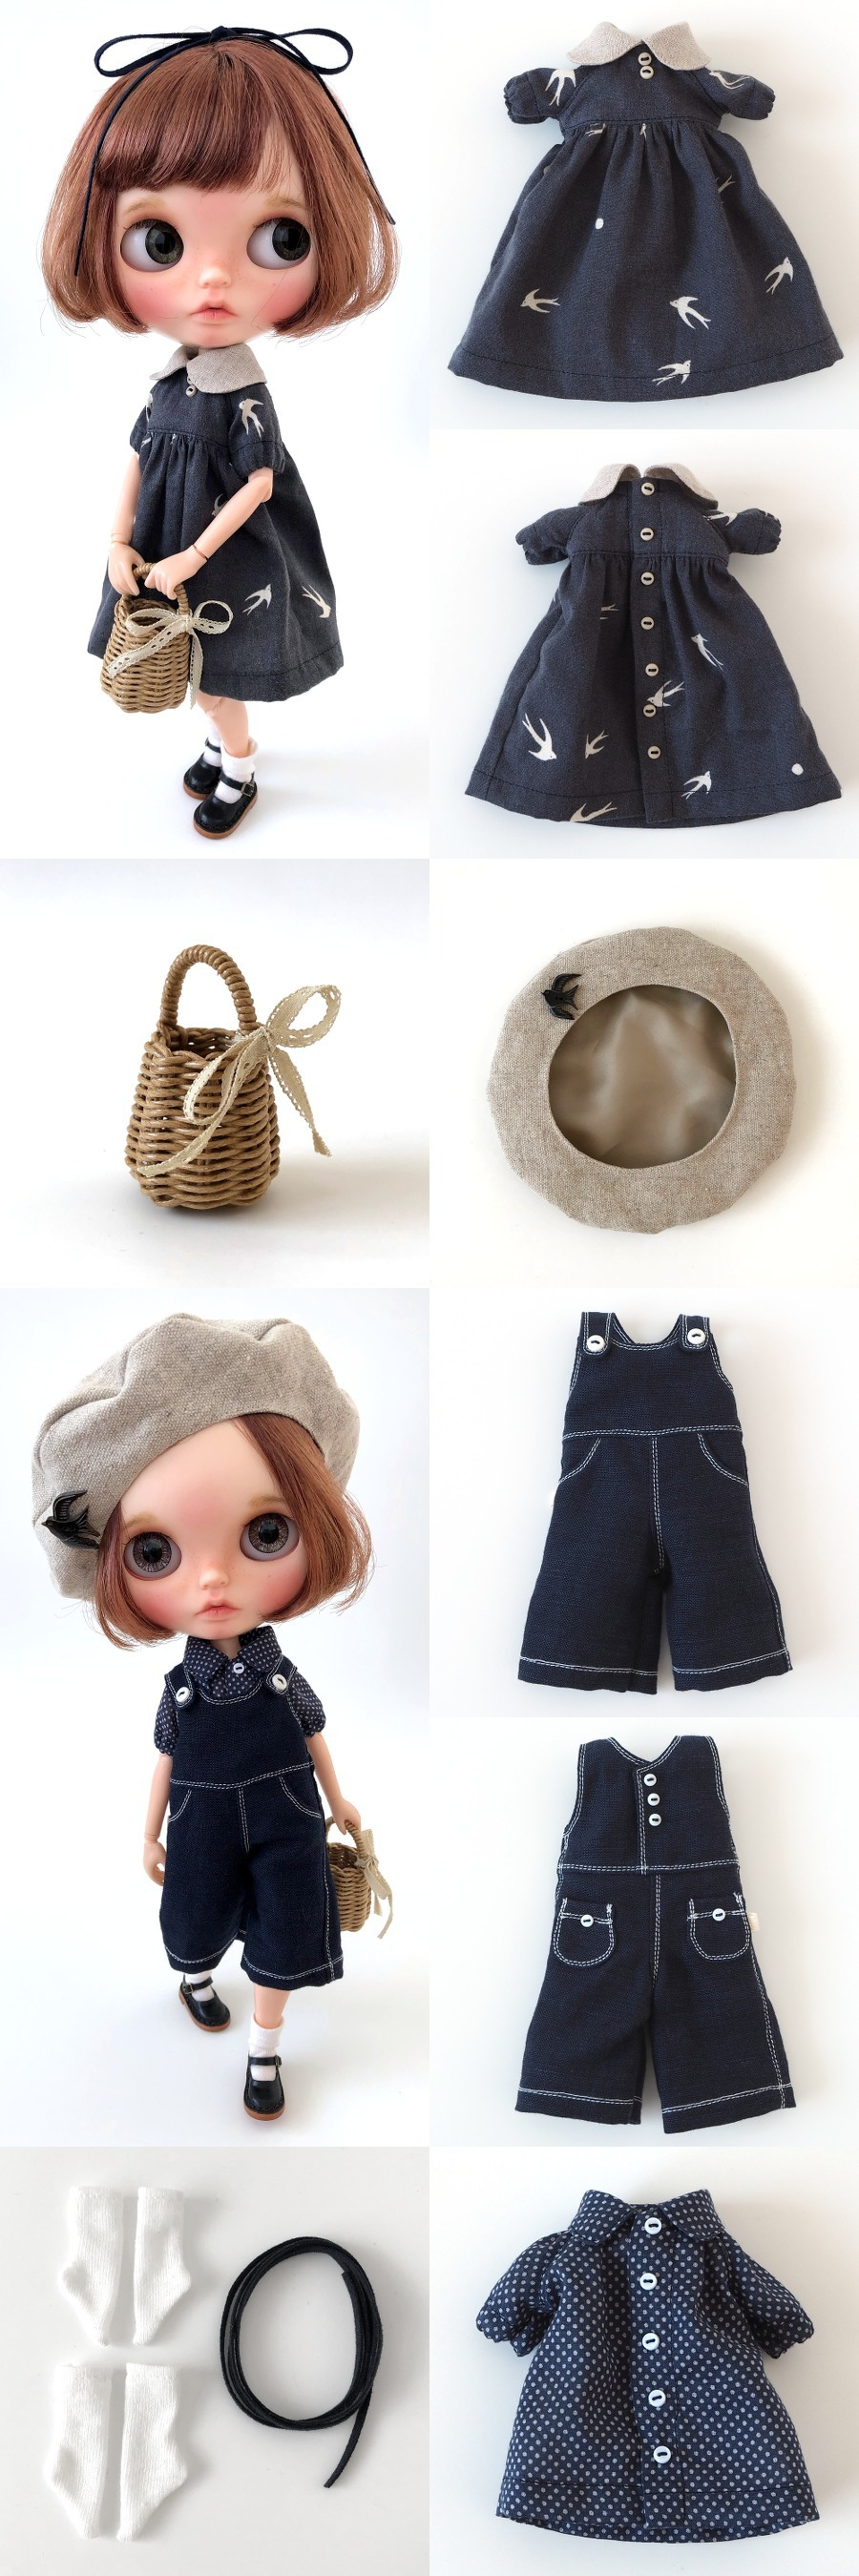 *lucalily * dolls clothes* Swallow dress *_d0217189_20371696.jpg